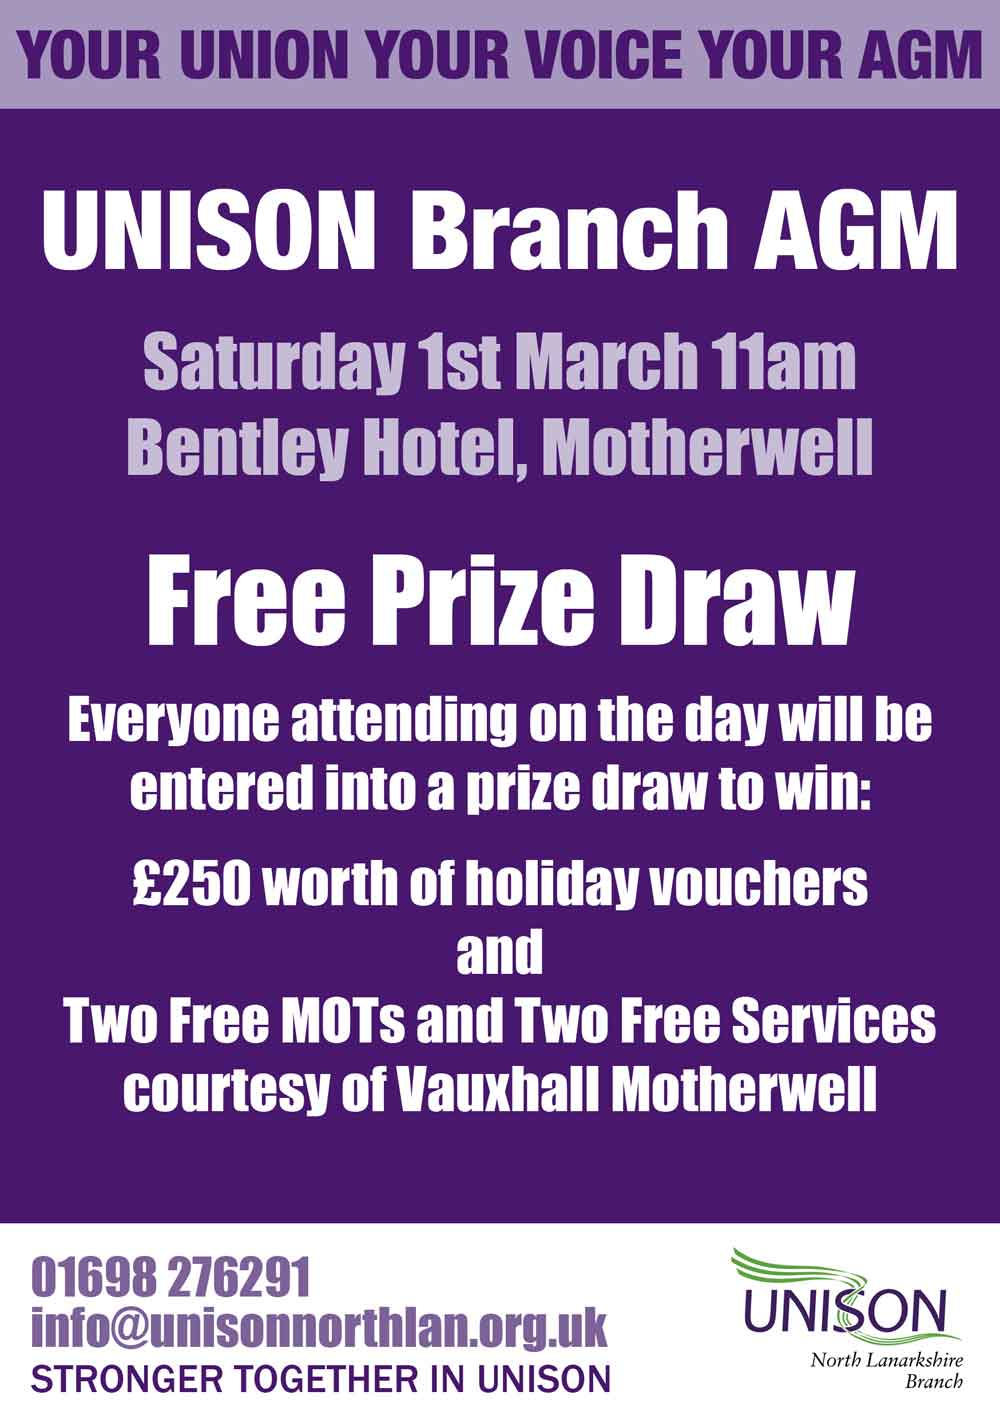 UNISON-Branch-AGM-Prize-Draw